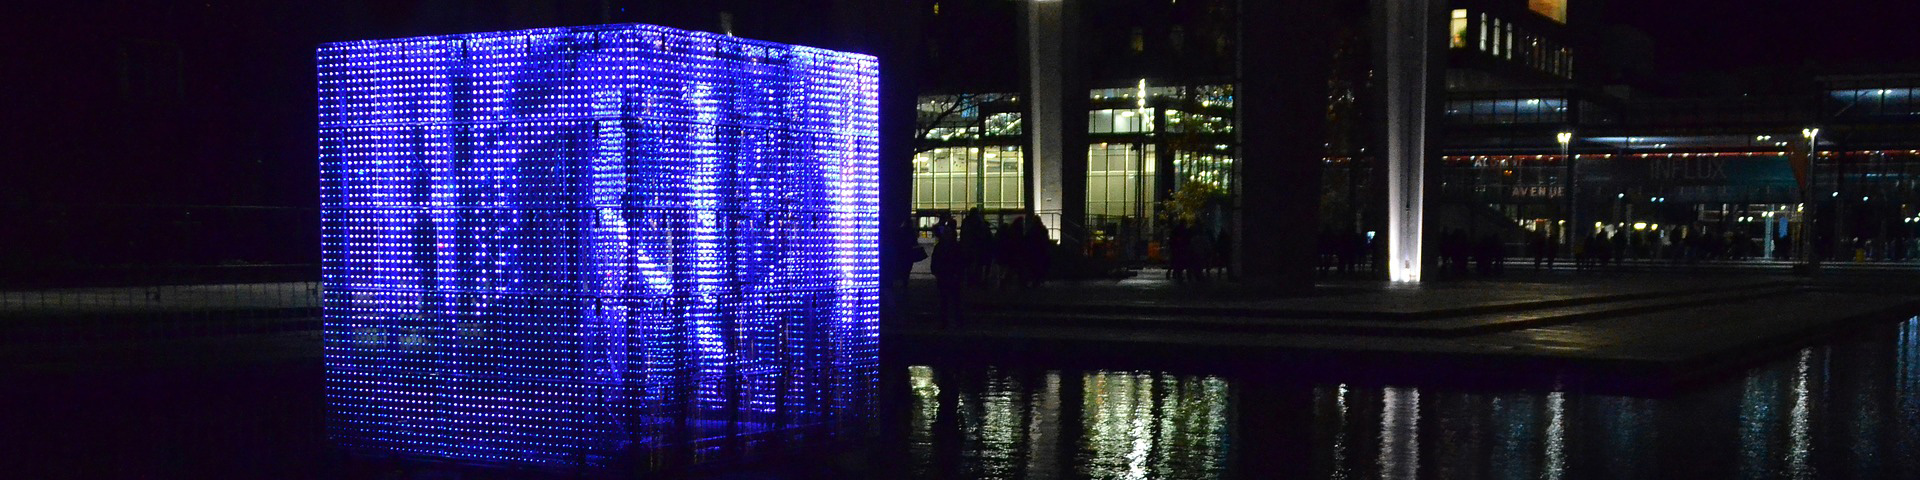 blue light art in Eindhoven during Glow